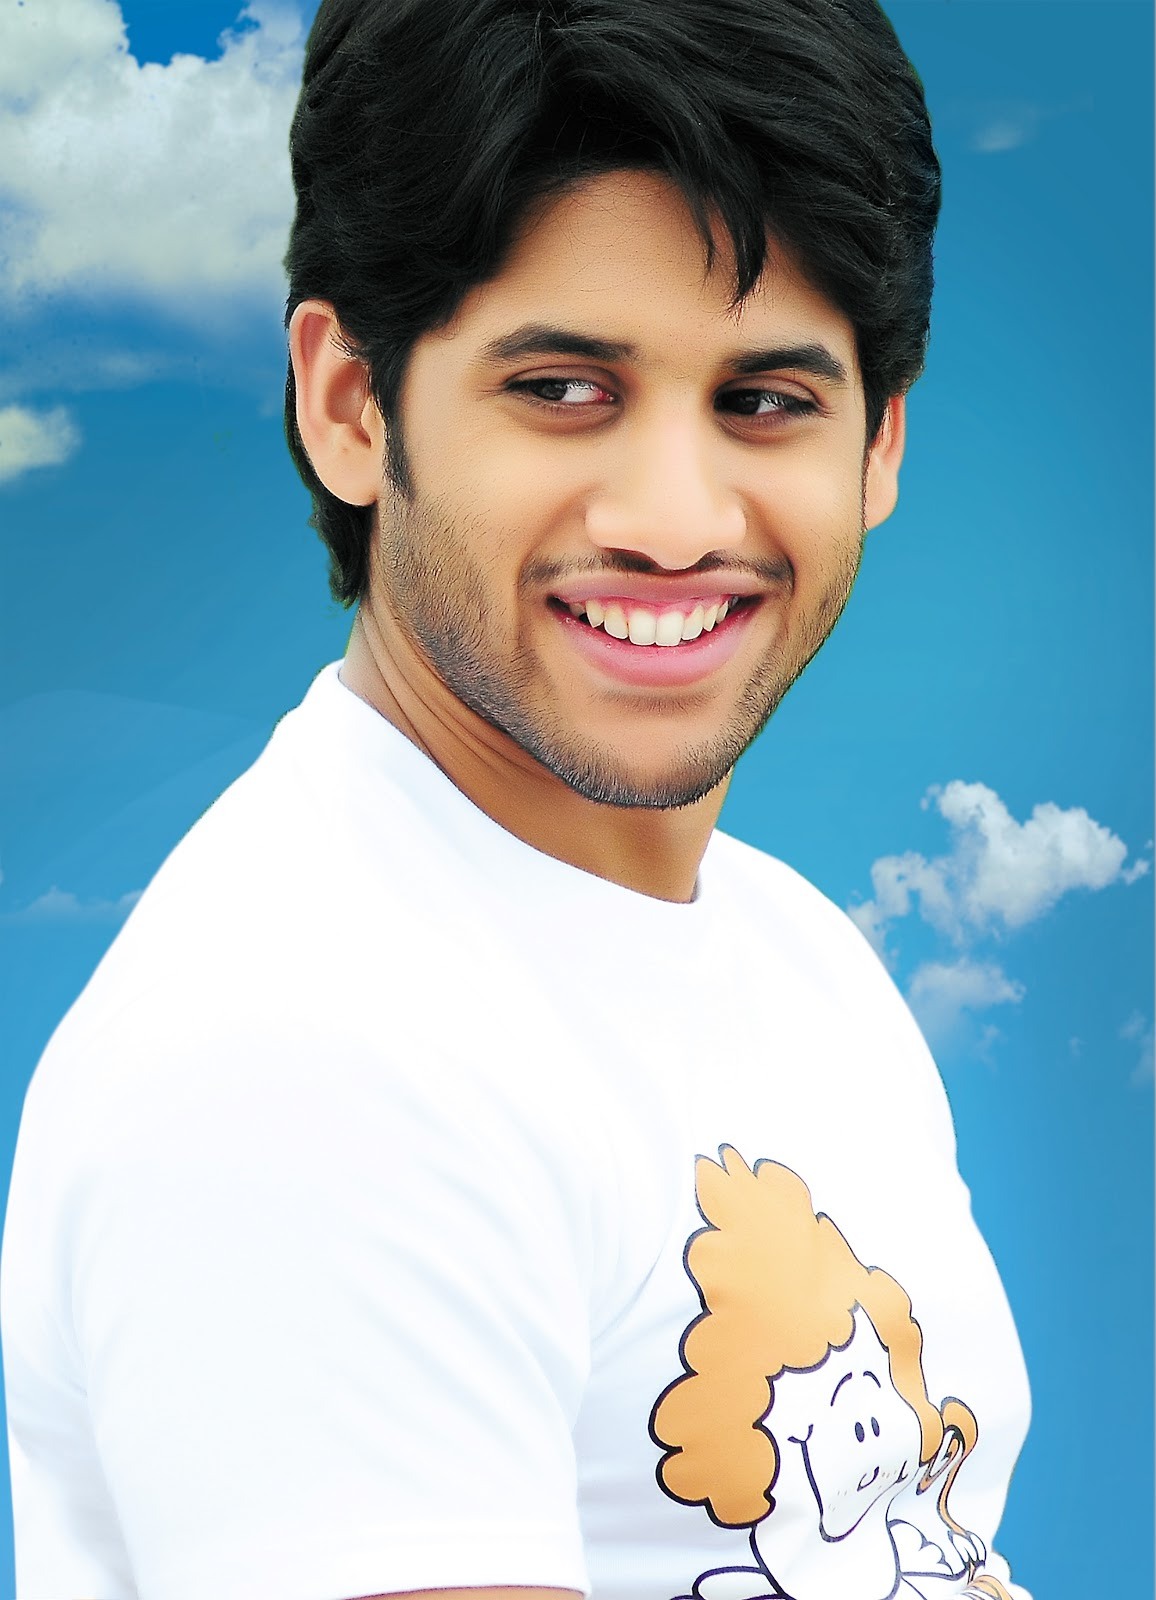 Naga Chaitanya Upcoming New Movies, Latest News, Bio, Photos